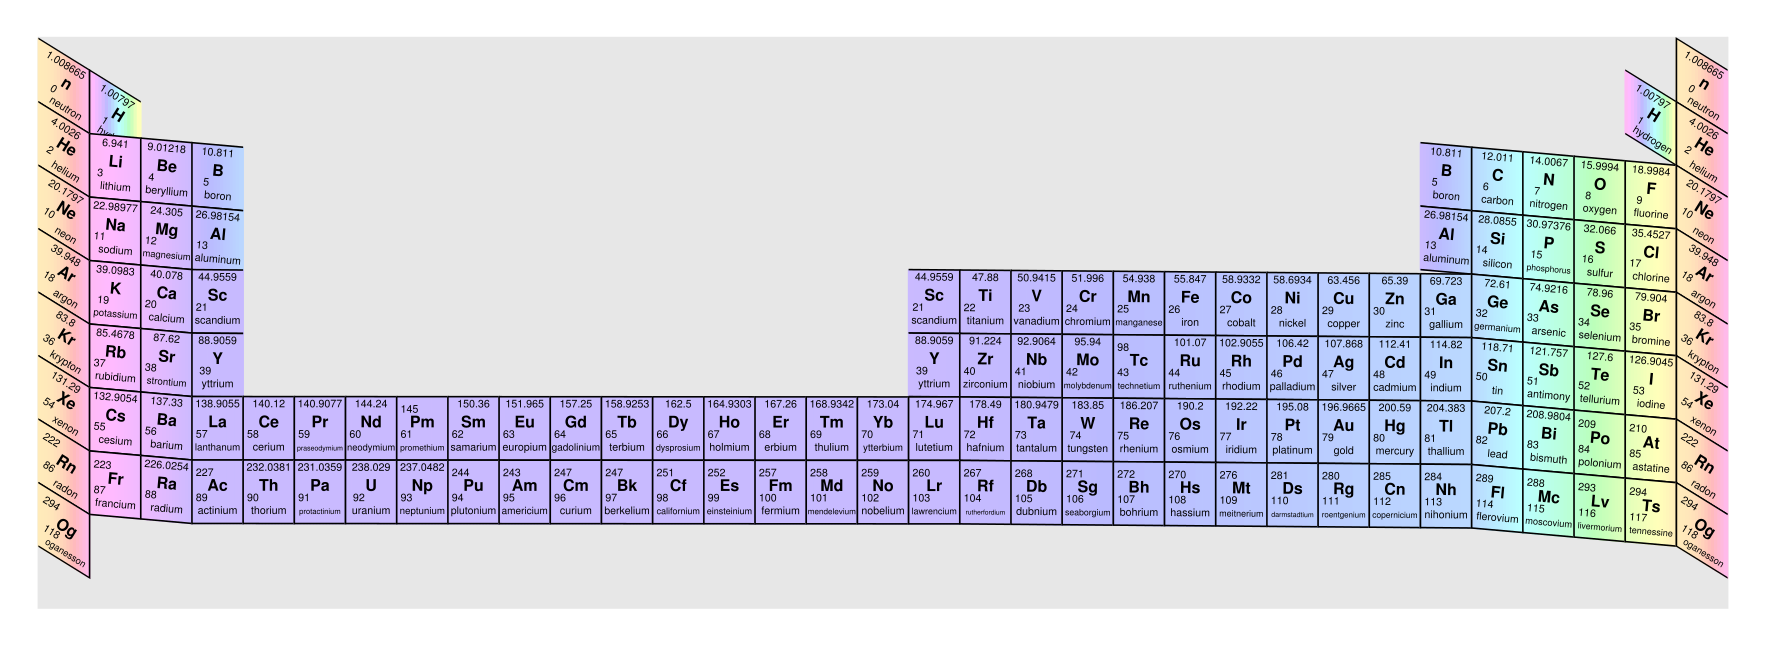 Periodic table of the elements cylinder with bulges pt basic 32 gamestrikefo Gallery